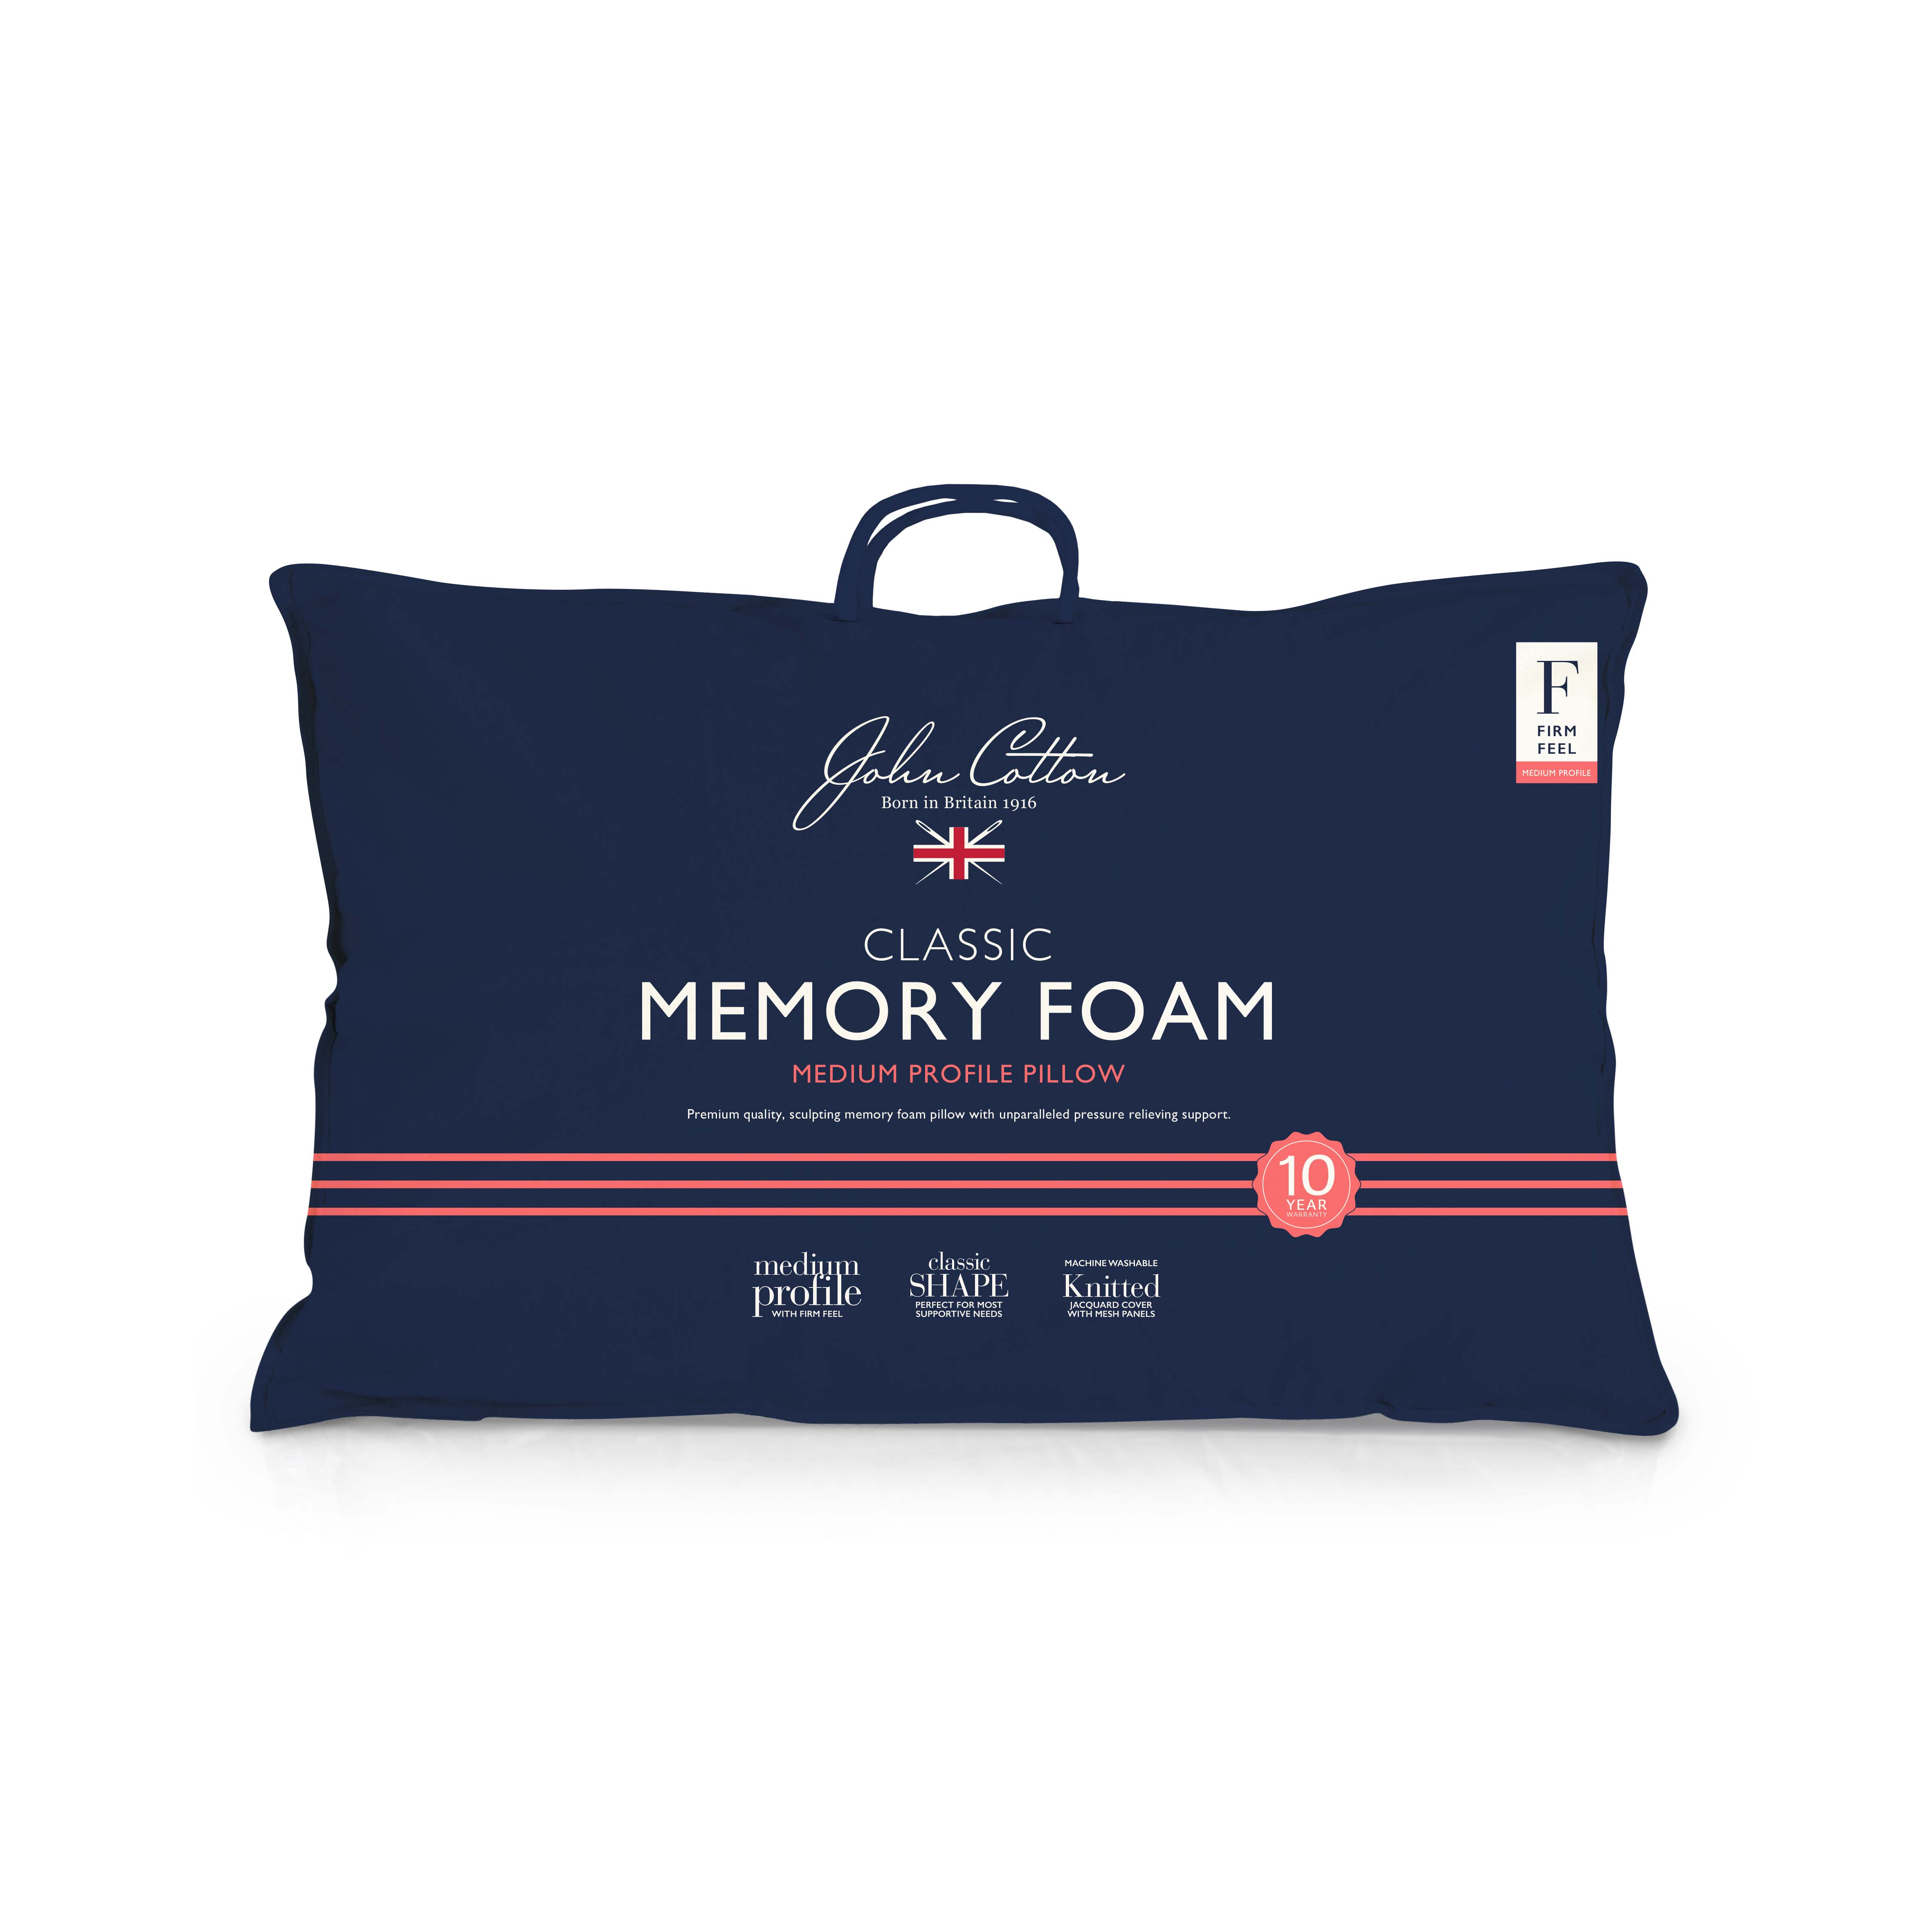 John Cotton Memory Foam Pillow - Medium